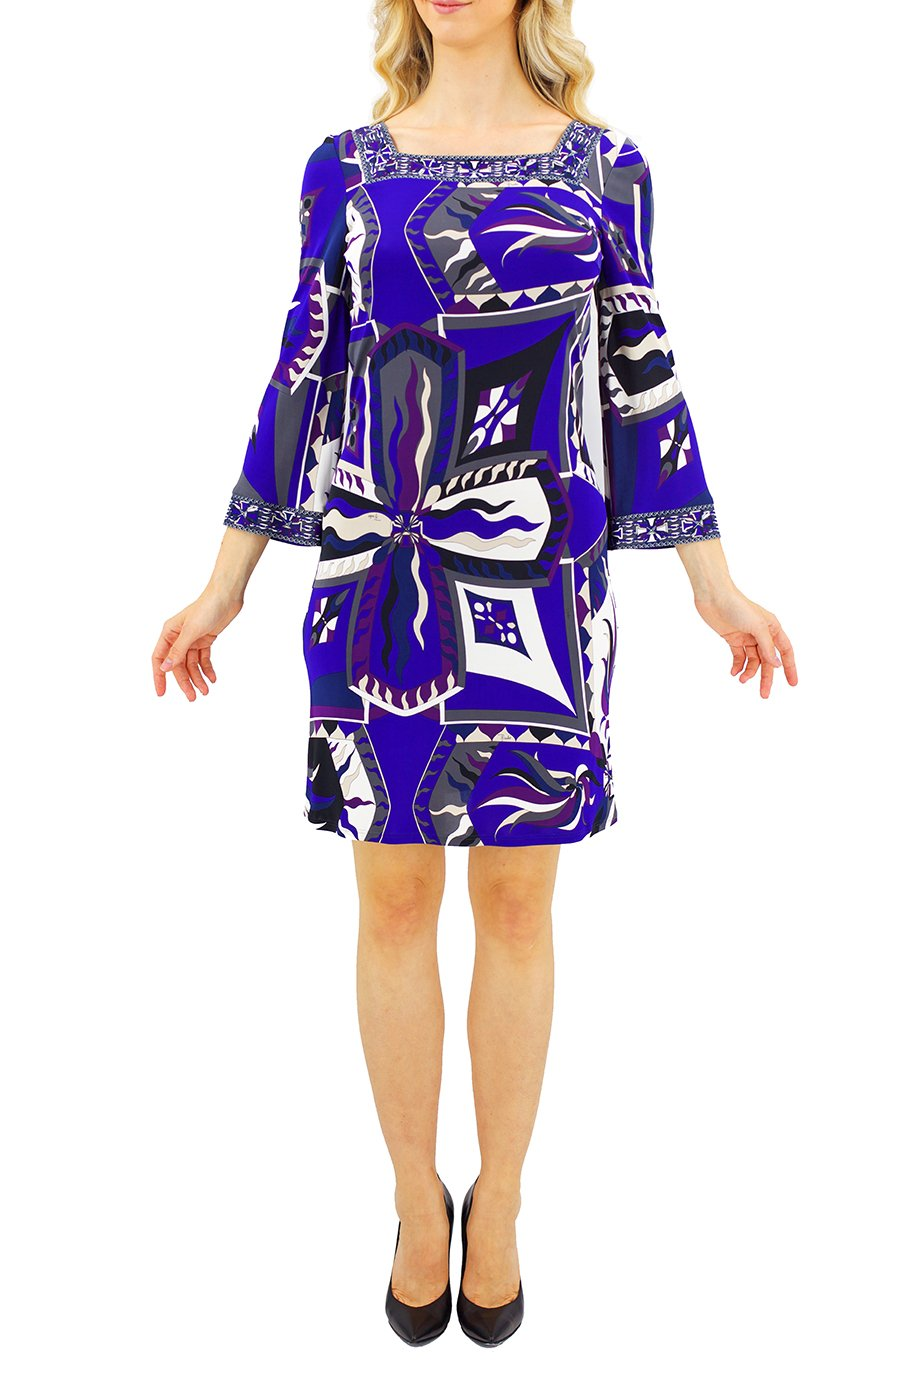 Emilio Pucci Purple Sunburst Print Bodycon  Dress